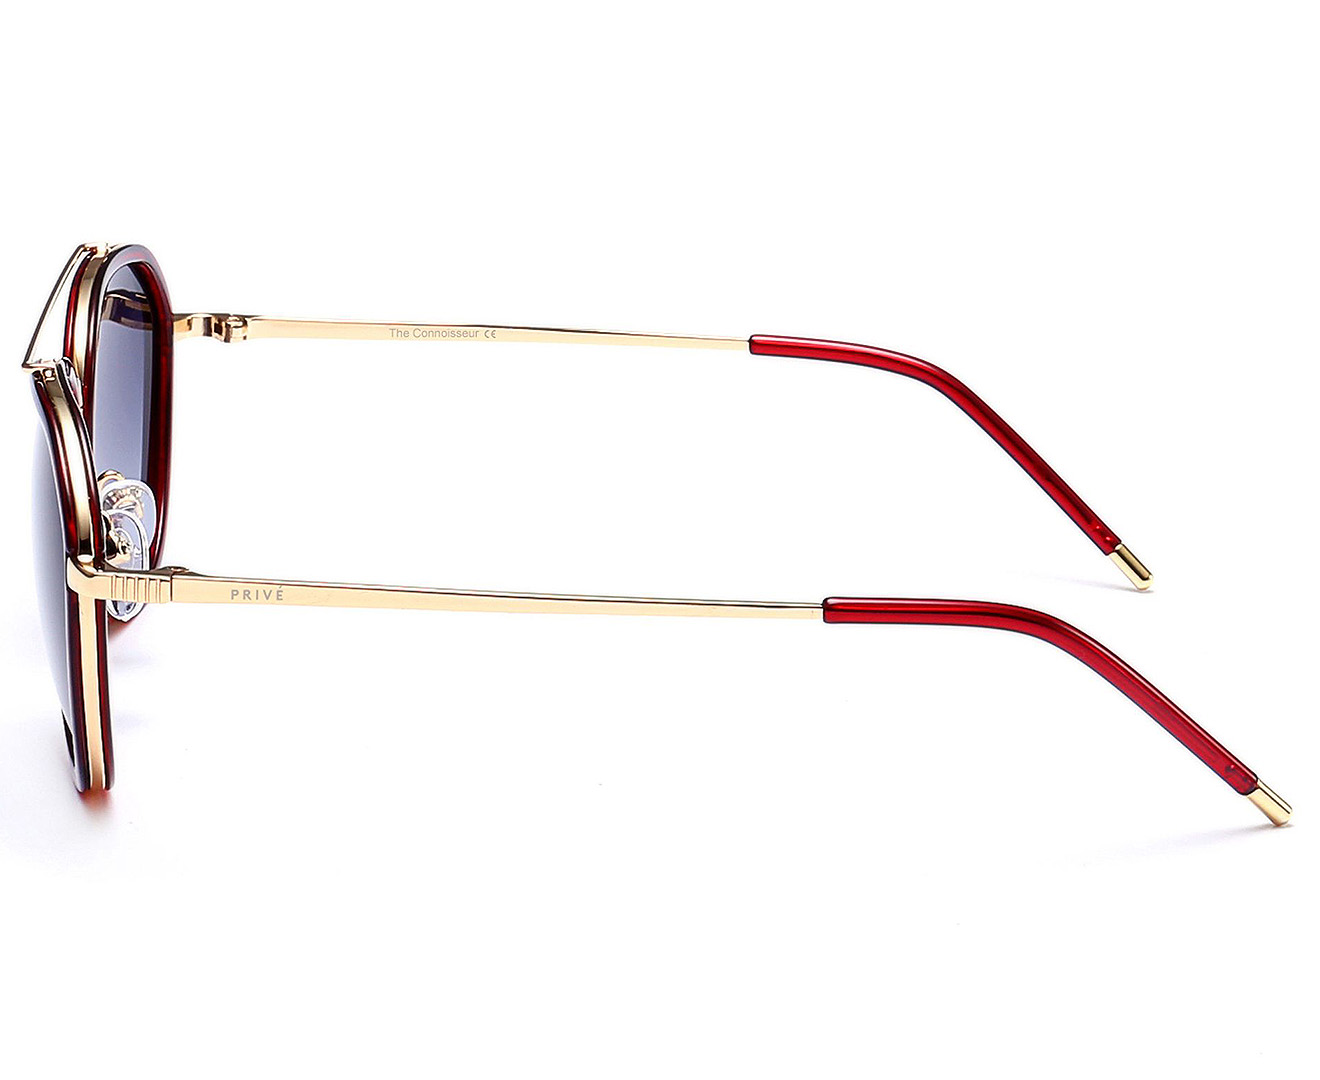 779926c61b2 Privé Revaux The Connoisseur Polarised Sunglasses - Red